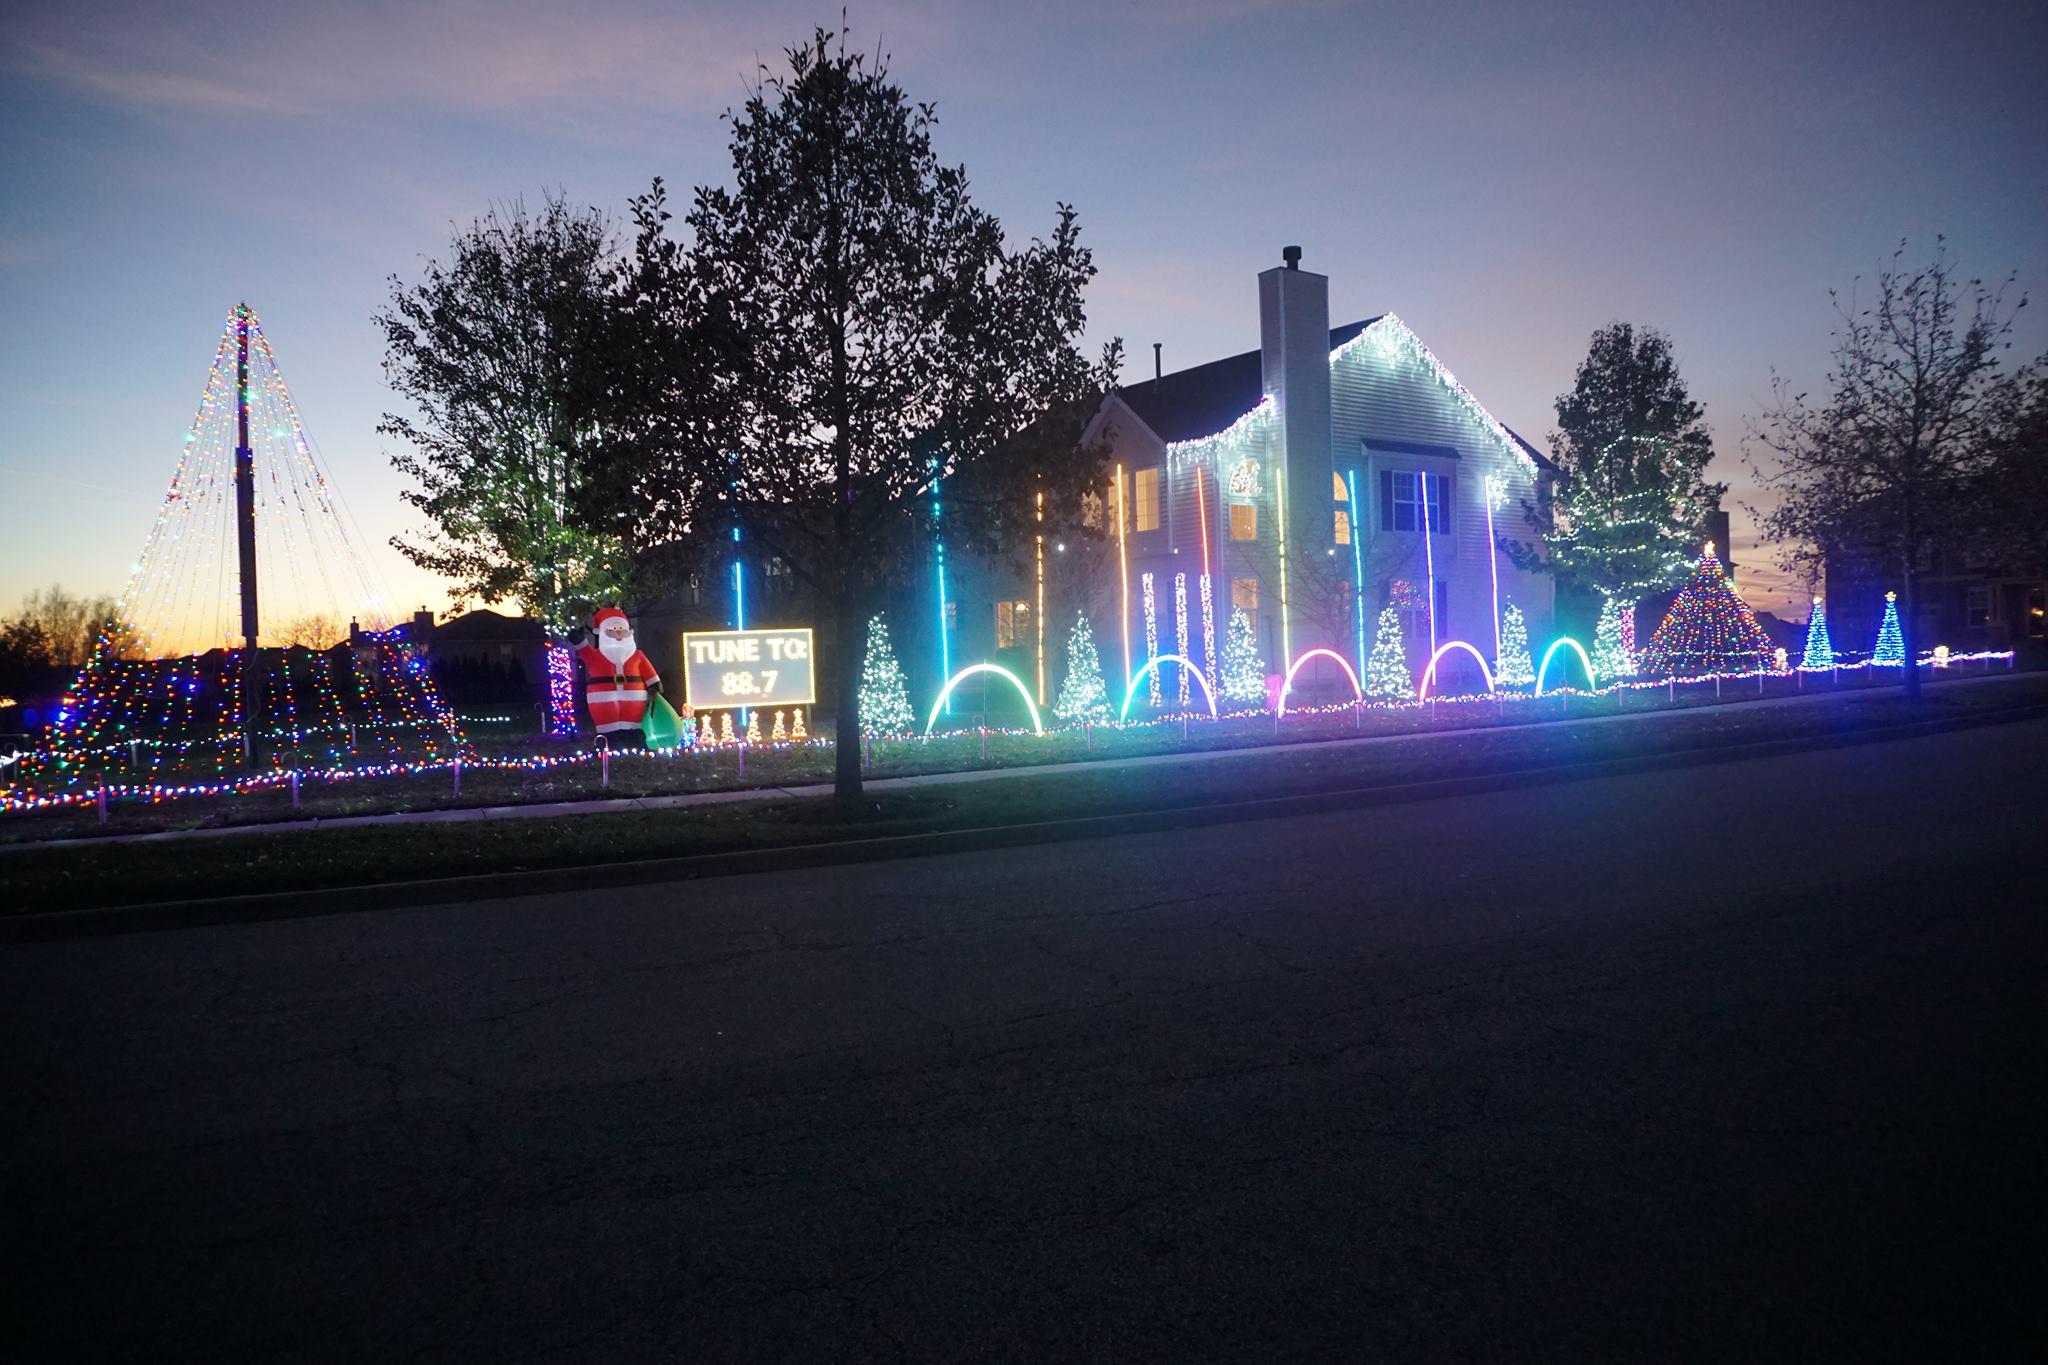 The Tarkowski Family Light Show in Antioch